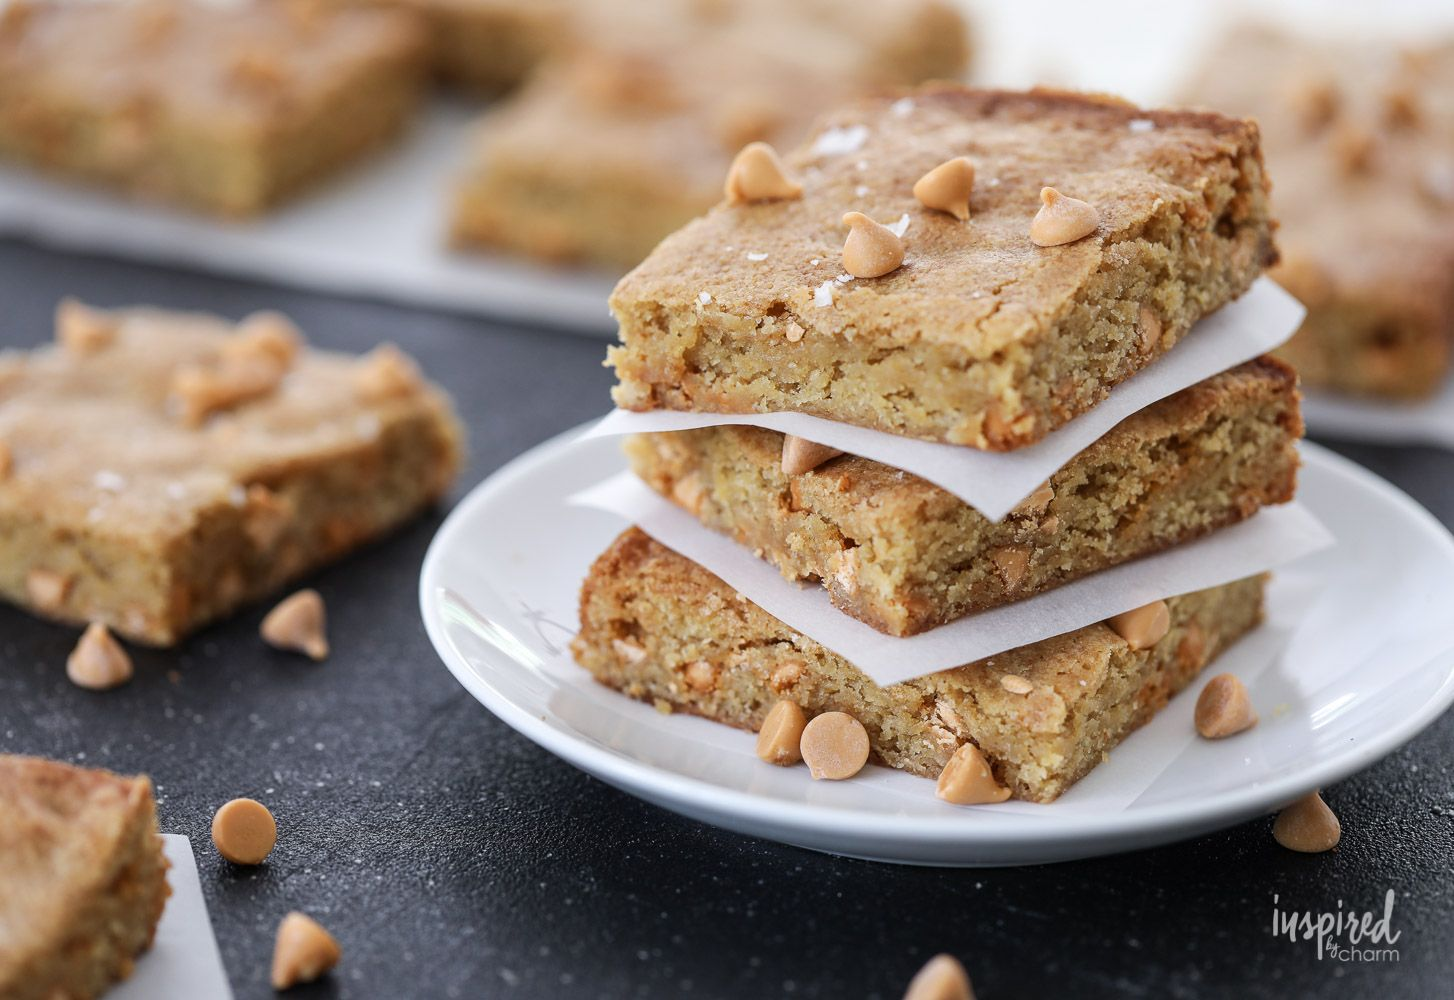 This Butterscotch Blonrecipe Is One Of My Favorites